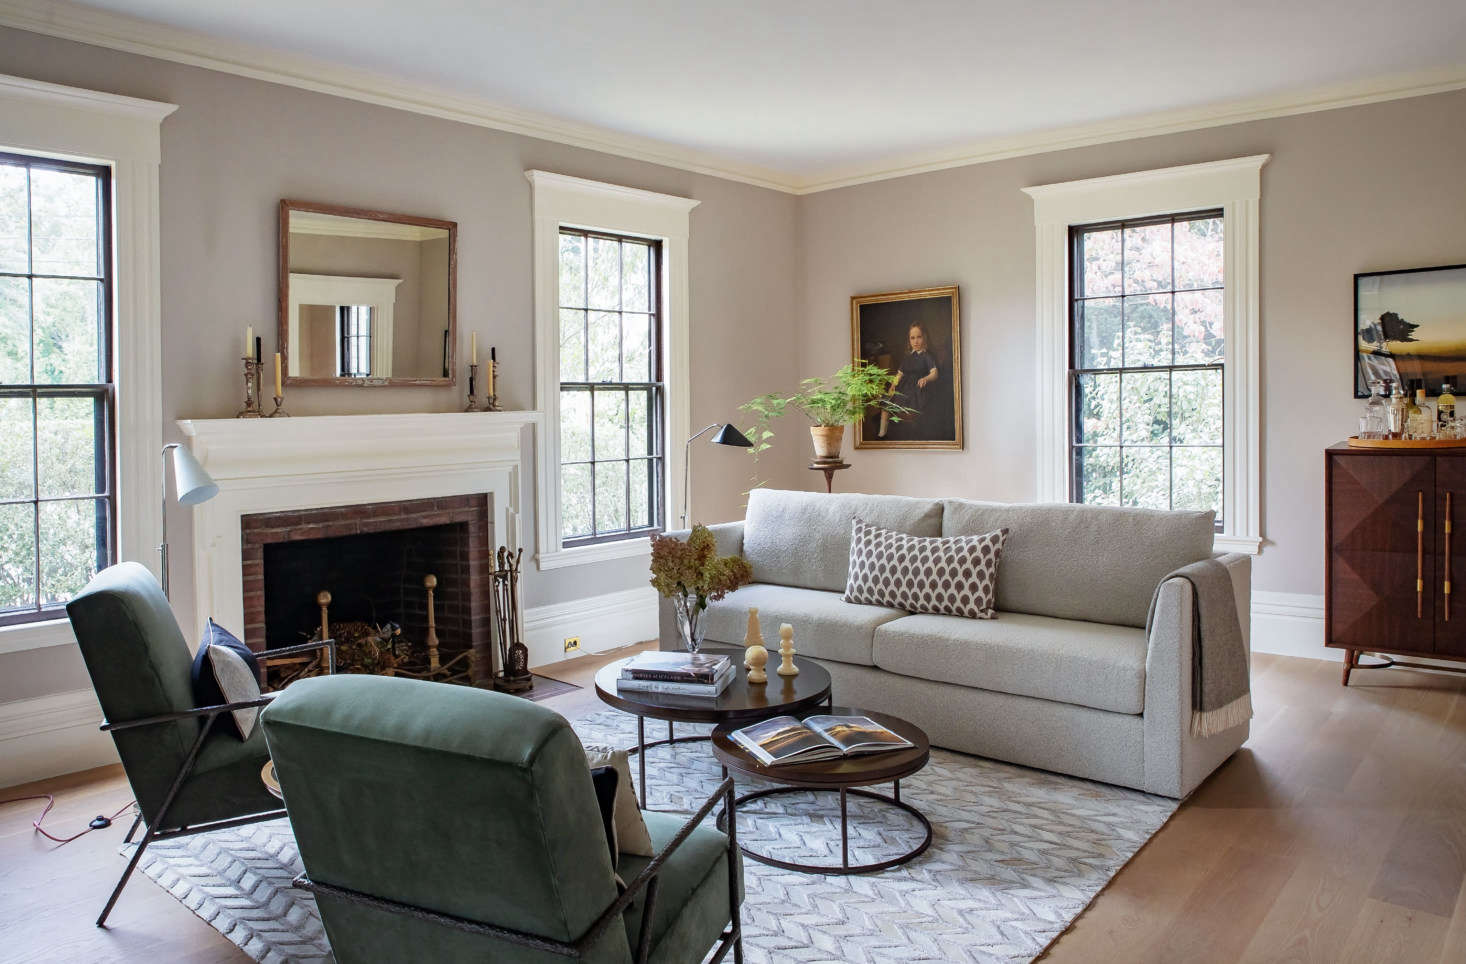 """The centerpiece of the room: Justine's oversized windows—and MG+BW's Franco II Studio Sofa. """"We've always believed home is, above all, a place of comfort,"""" says Allison O'Connor, president and CEO of MG+BW, """"and it's more important than ever now. The sofa, for instance, is where we've all been spending much more time, and we're committed to making ours incredibly comfortable in a sustainable manner."""" The Franco is inspired by 70s lounge furniture, with deep and relaxing seating and a soft boucle fabric. It's paired with the versatile Bassey Nesting Cocktail Table with chocolate-stained oak tops (and Justine's collection of vintage candlesticks on the mantel)."""